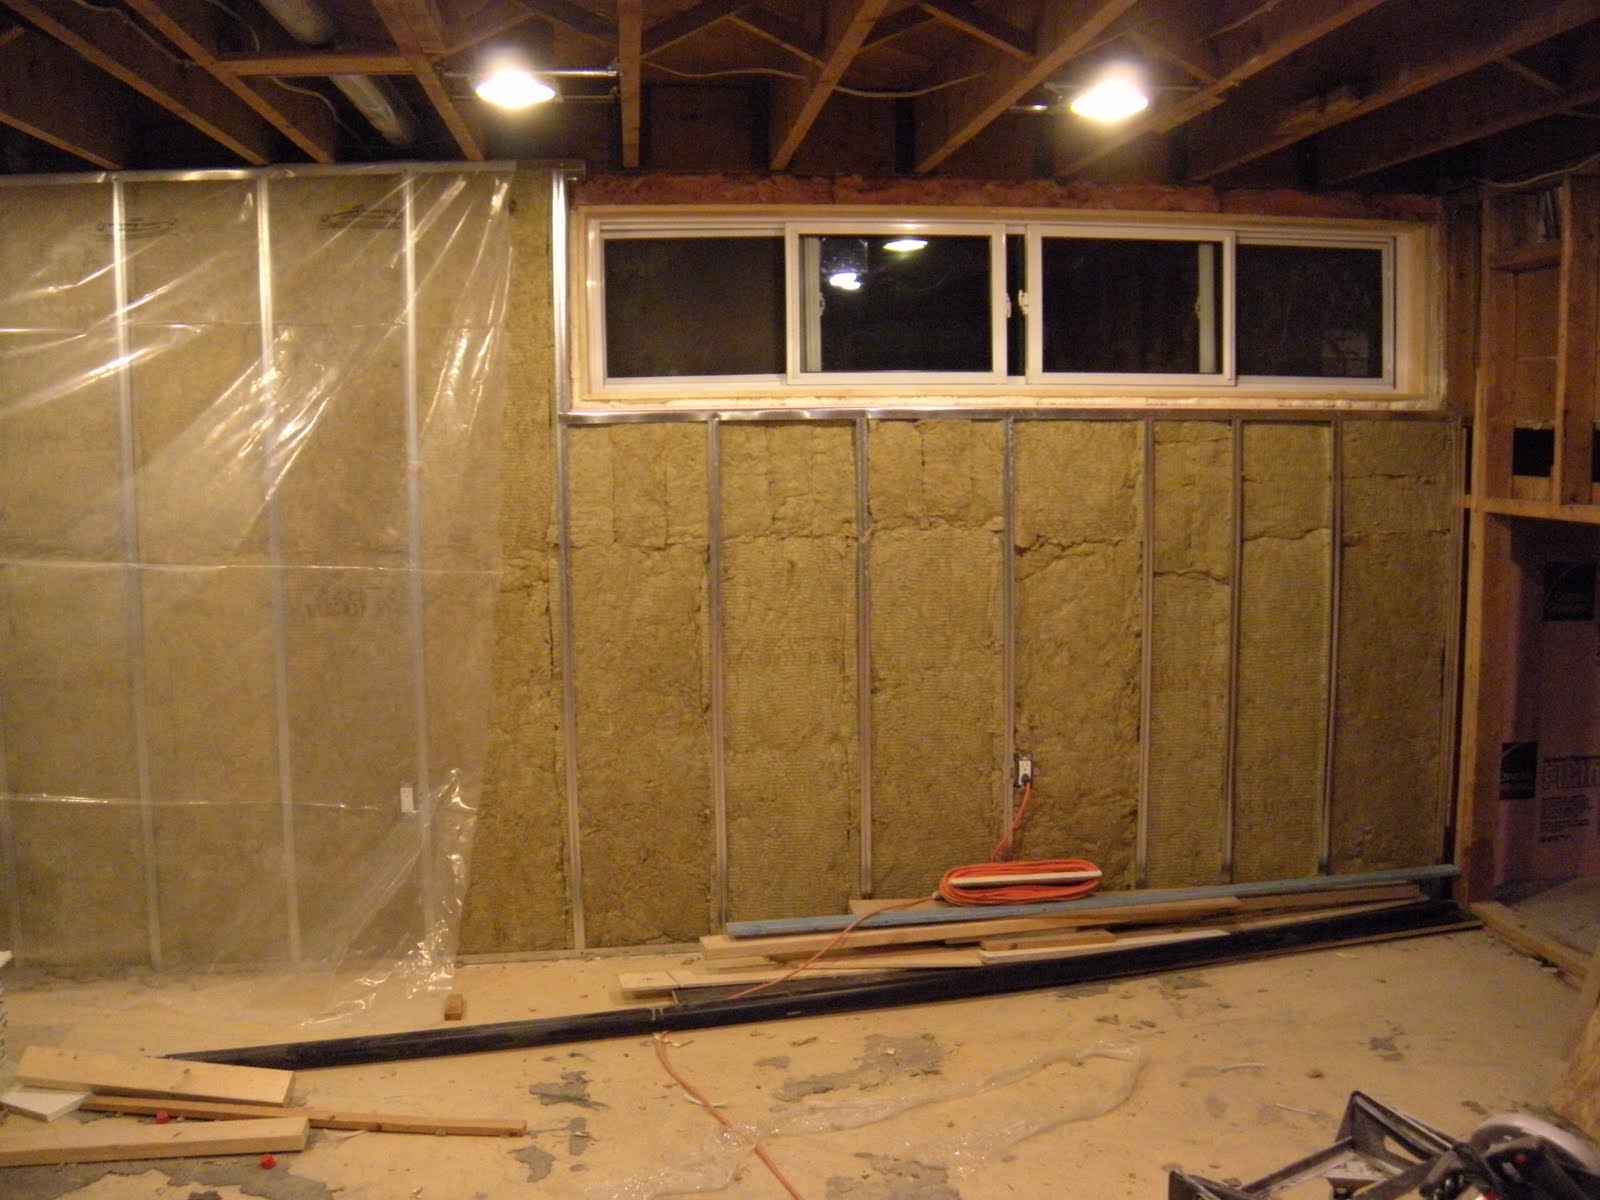 No Insulation In Walls : Our journey basement insulation is almost done